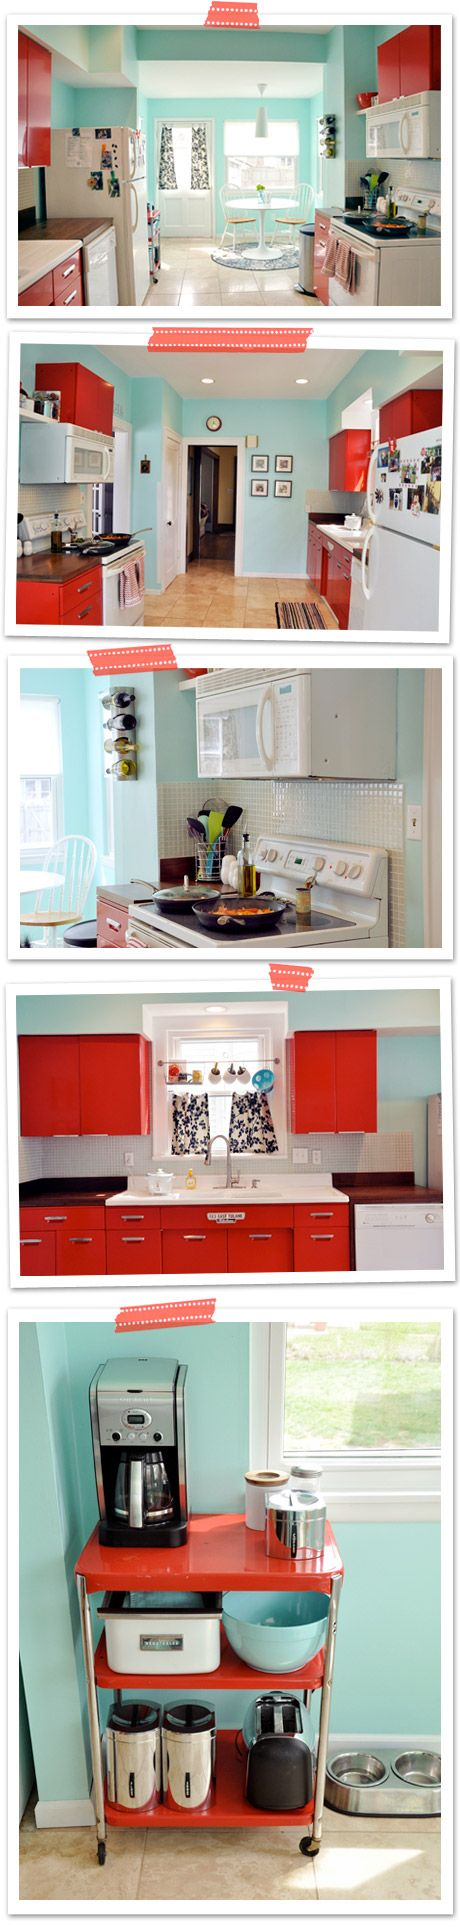 best 25 kitchen ideas red ideas on pinterest kitchen in red